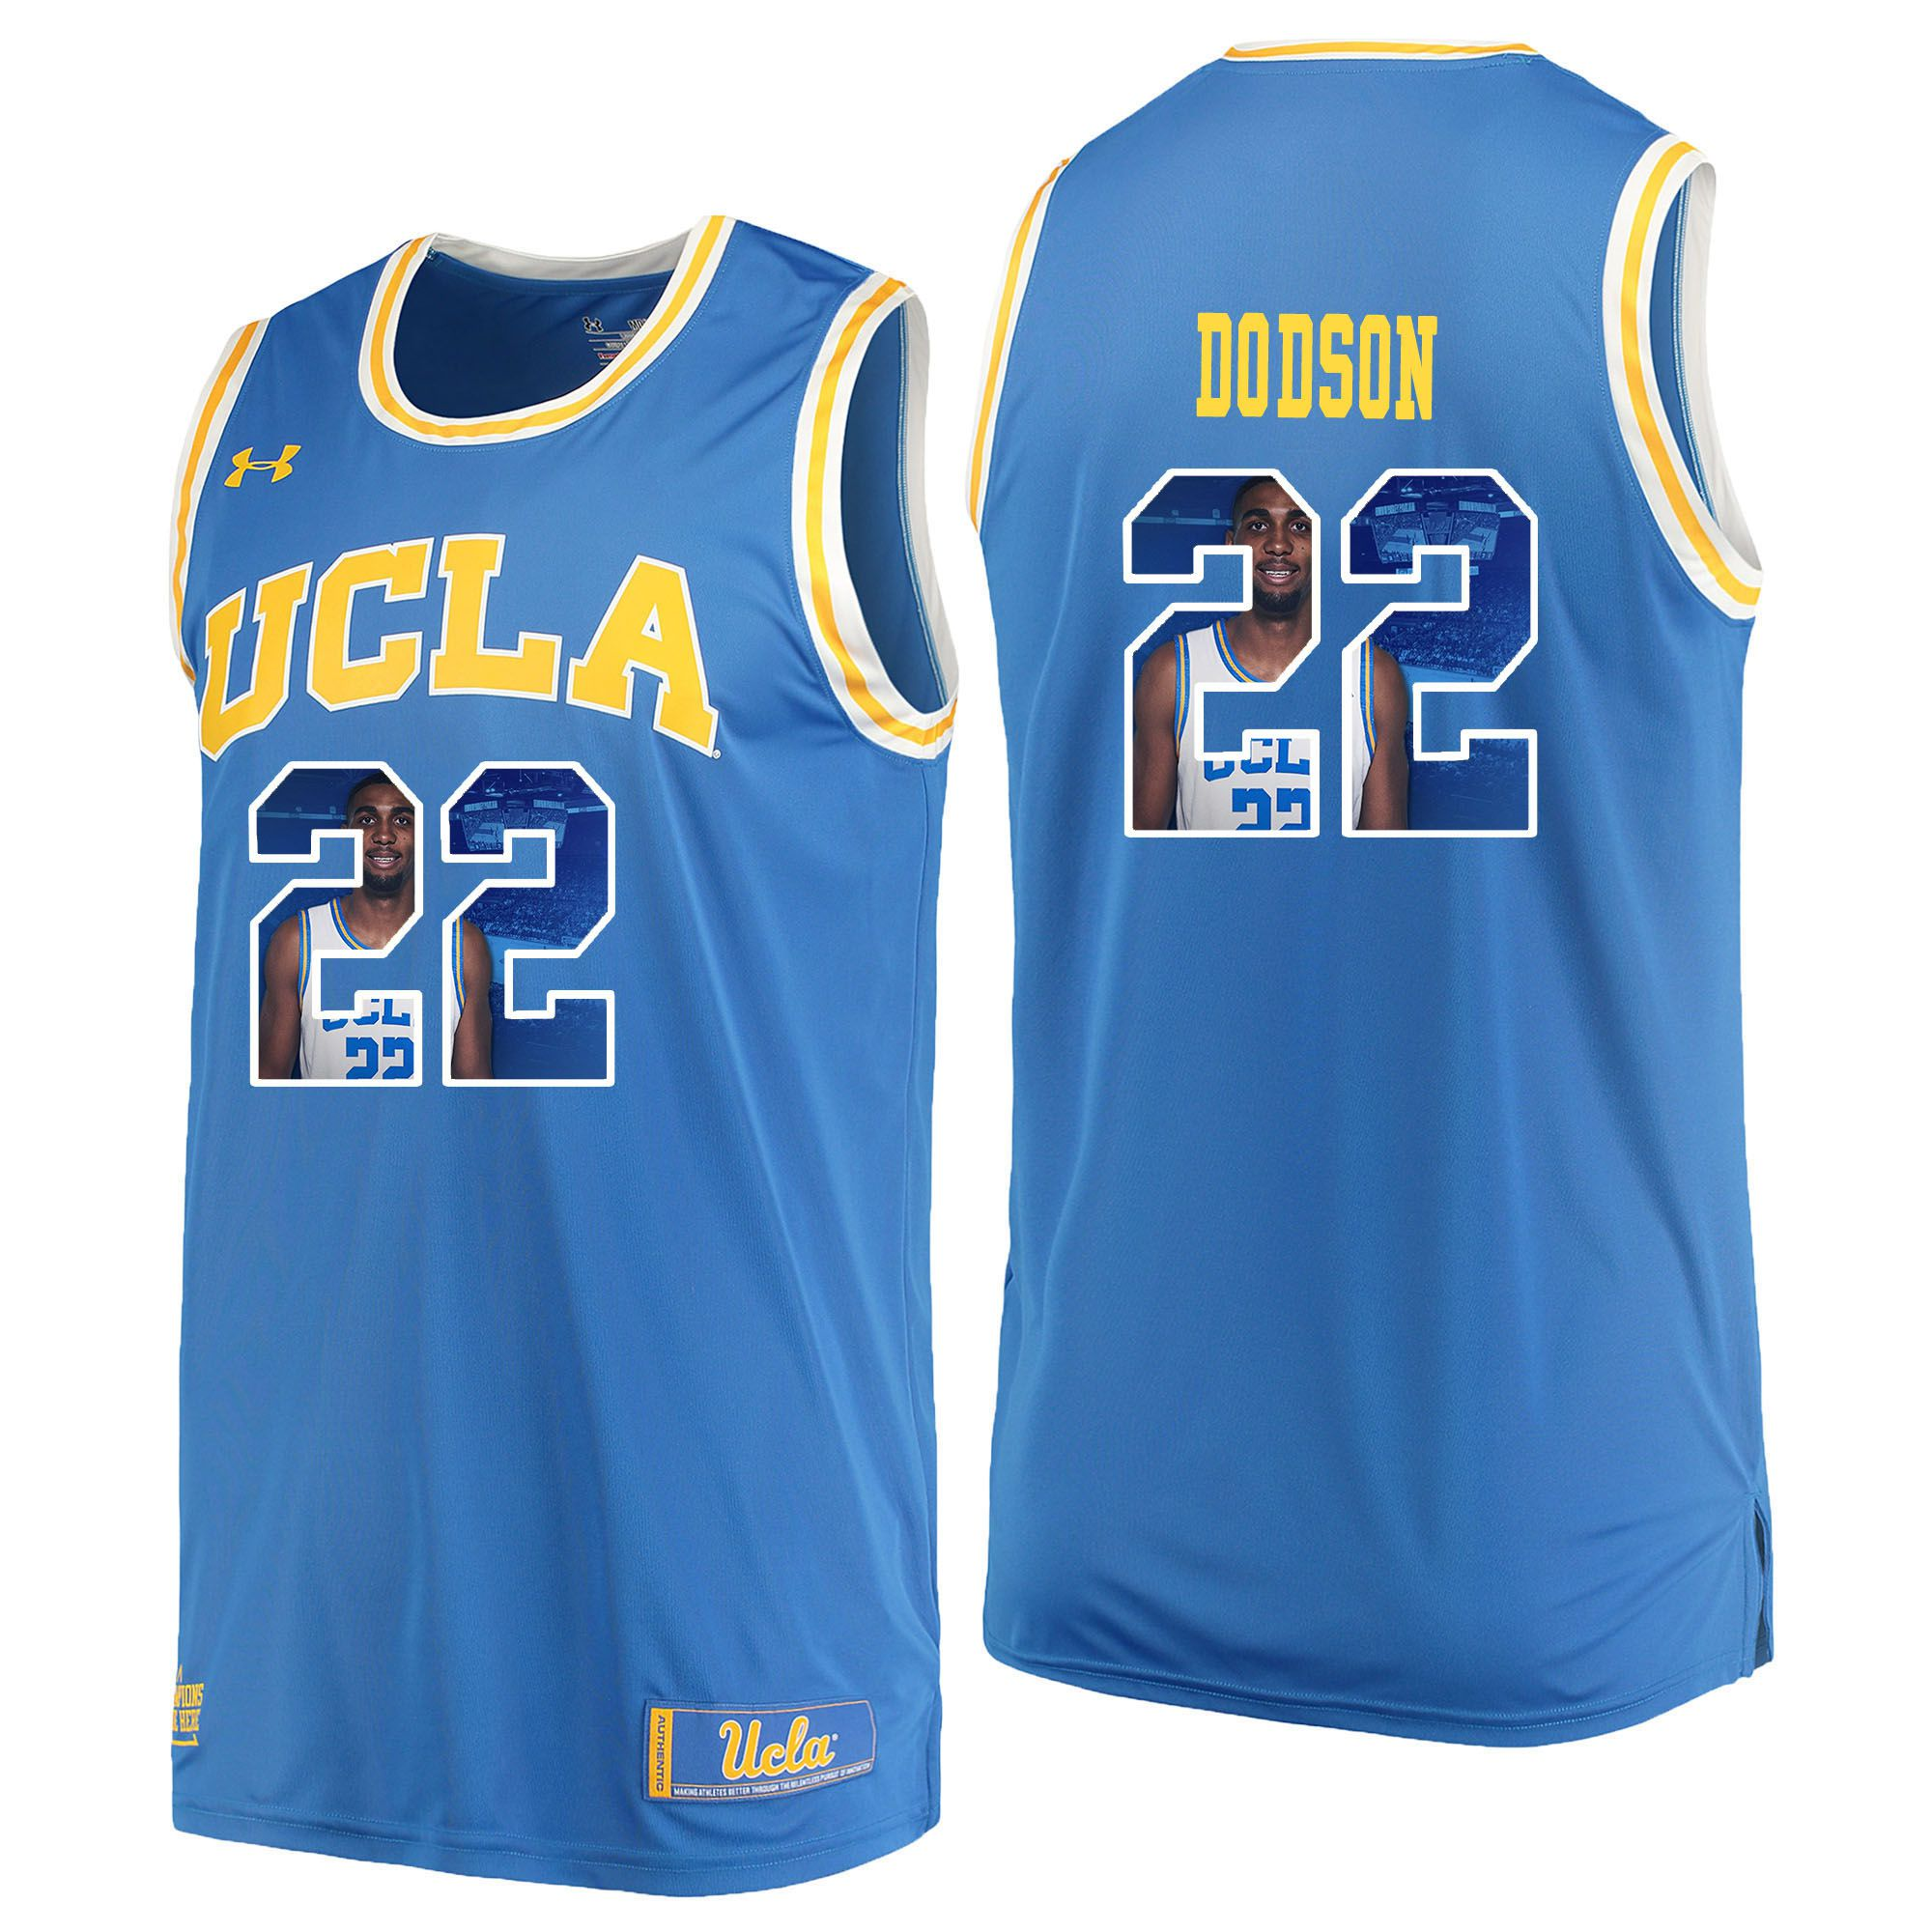 Men UCLA UA 22 Dodson Light Blue Fashion Edition Customized NCAA Jerseys